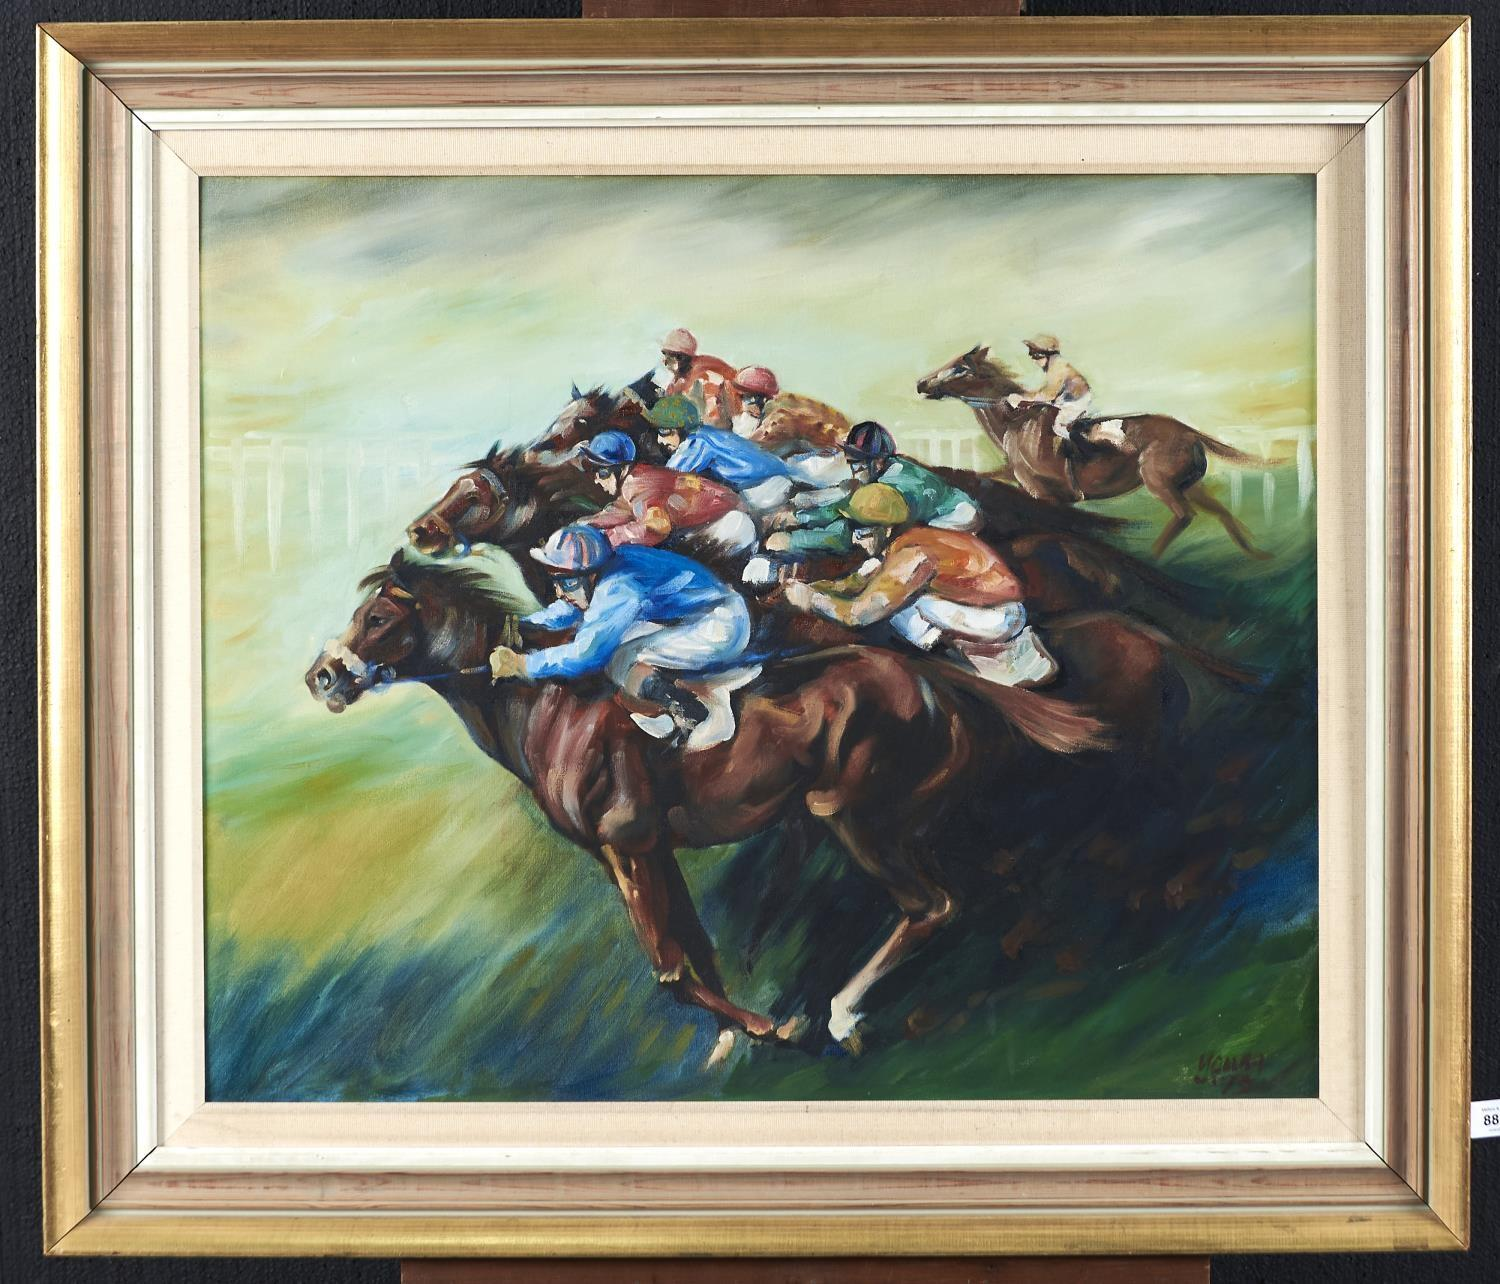 BRITISH SCHOOL, 1973 - HORSE RACING, INDISTINCTLY SIGNED YOUNG AND DATED, OIL ON BOARD, 61 X 74CM - Image 2 of 2